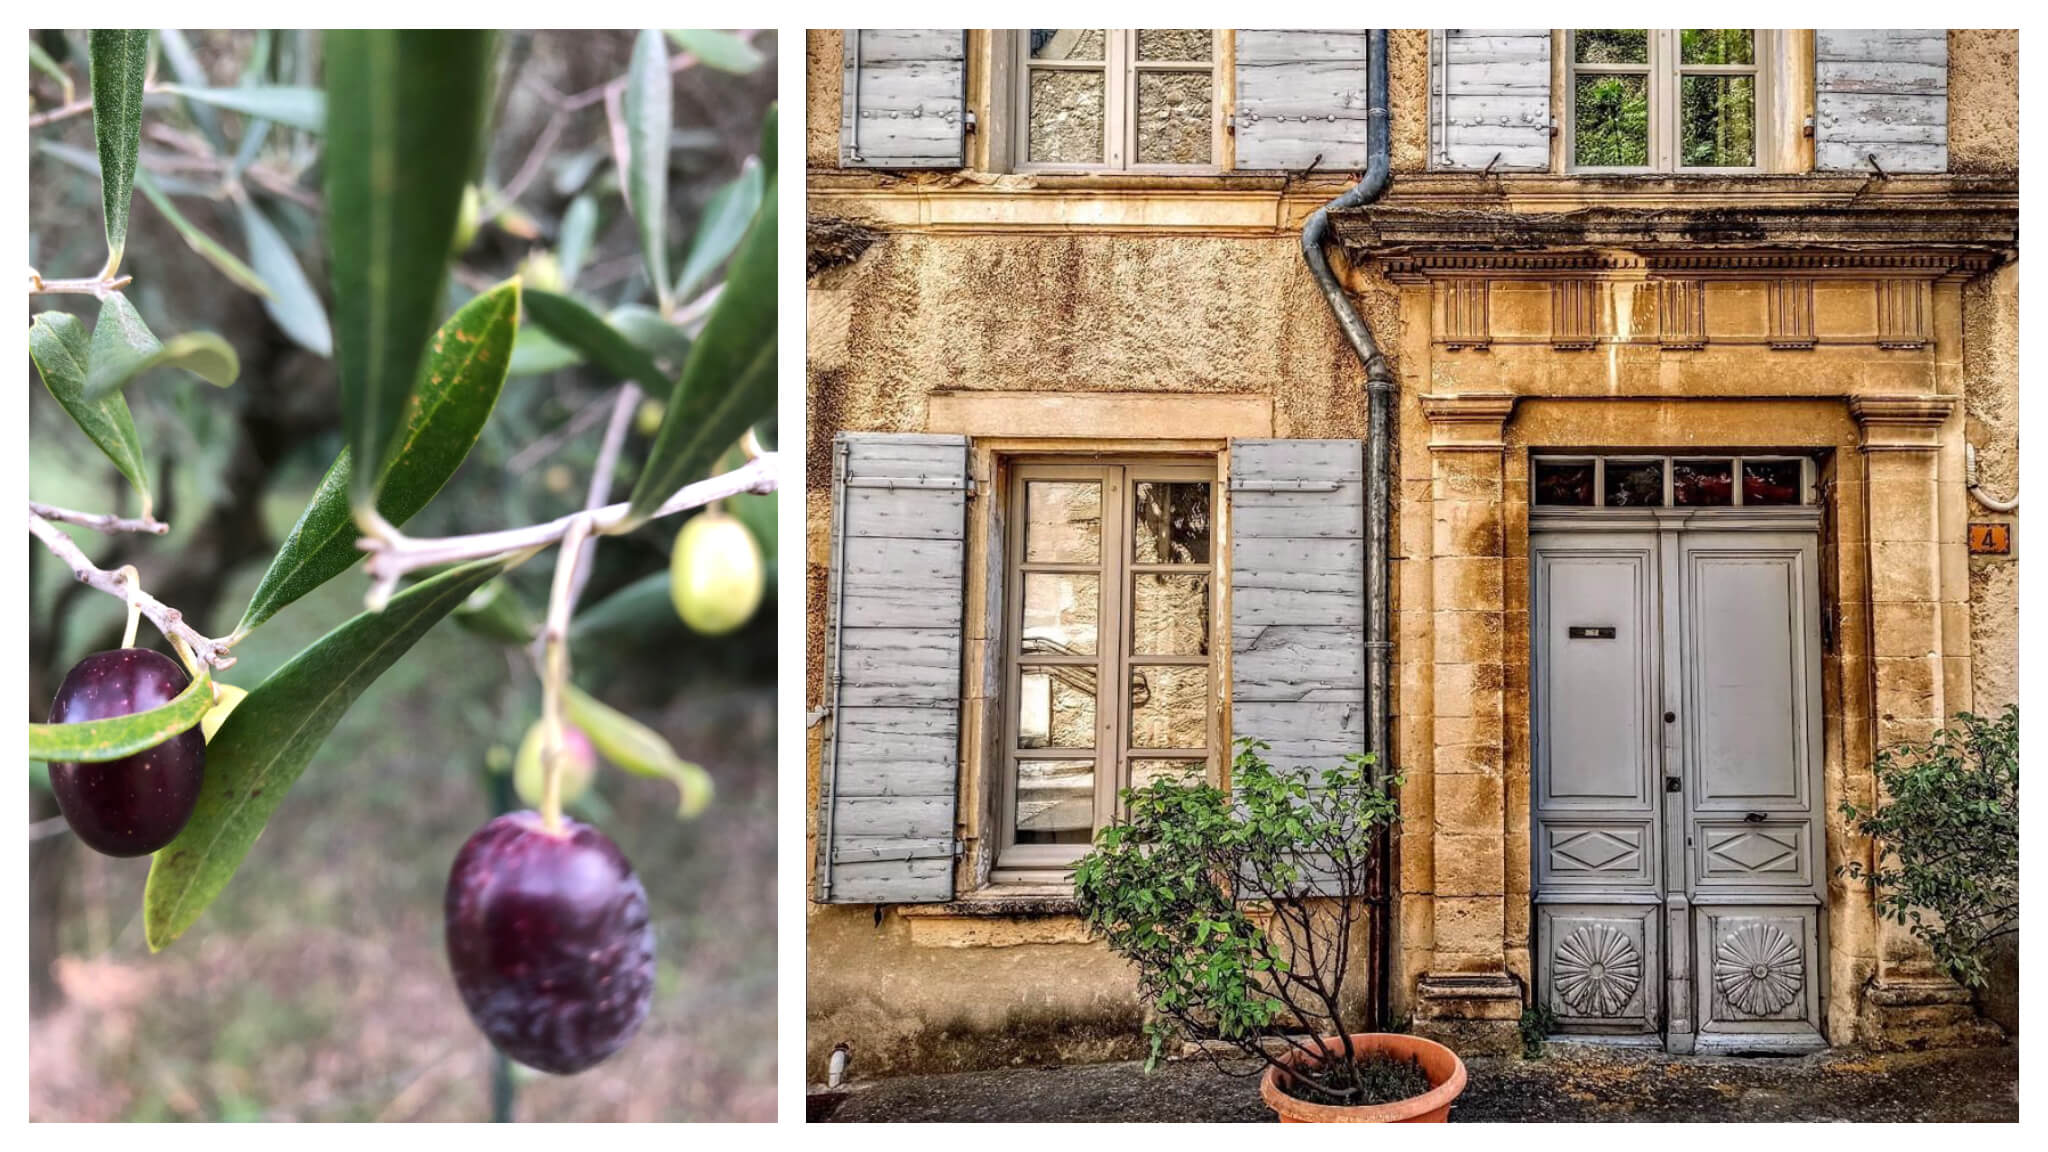 Left: a close up of olives on an olive tree. Right: the facade of a house in Vaison-la-Romaine.